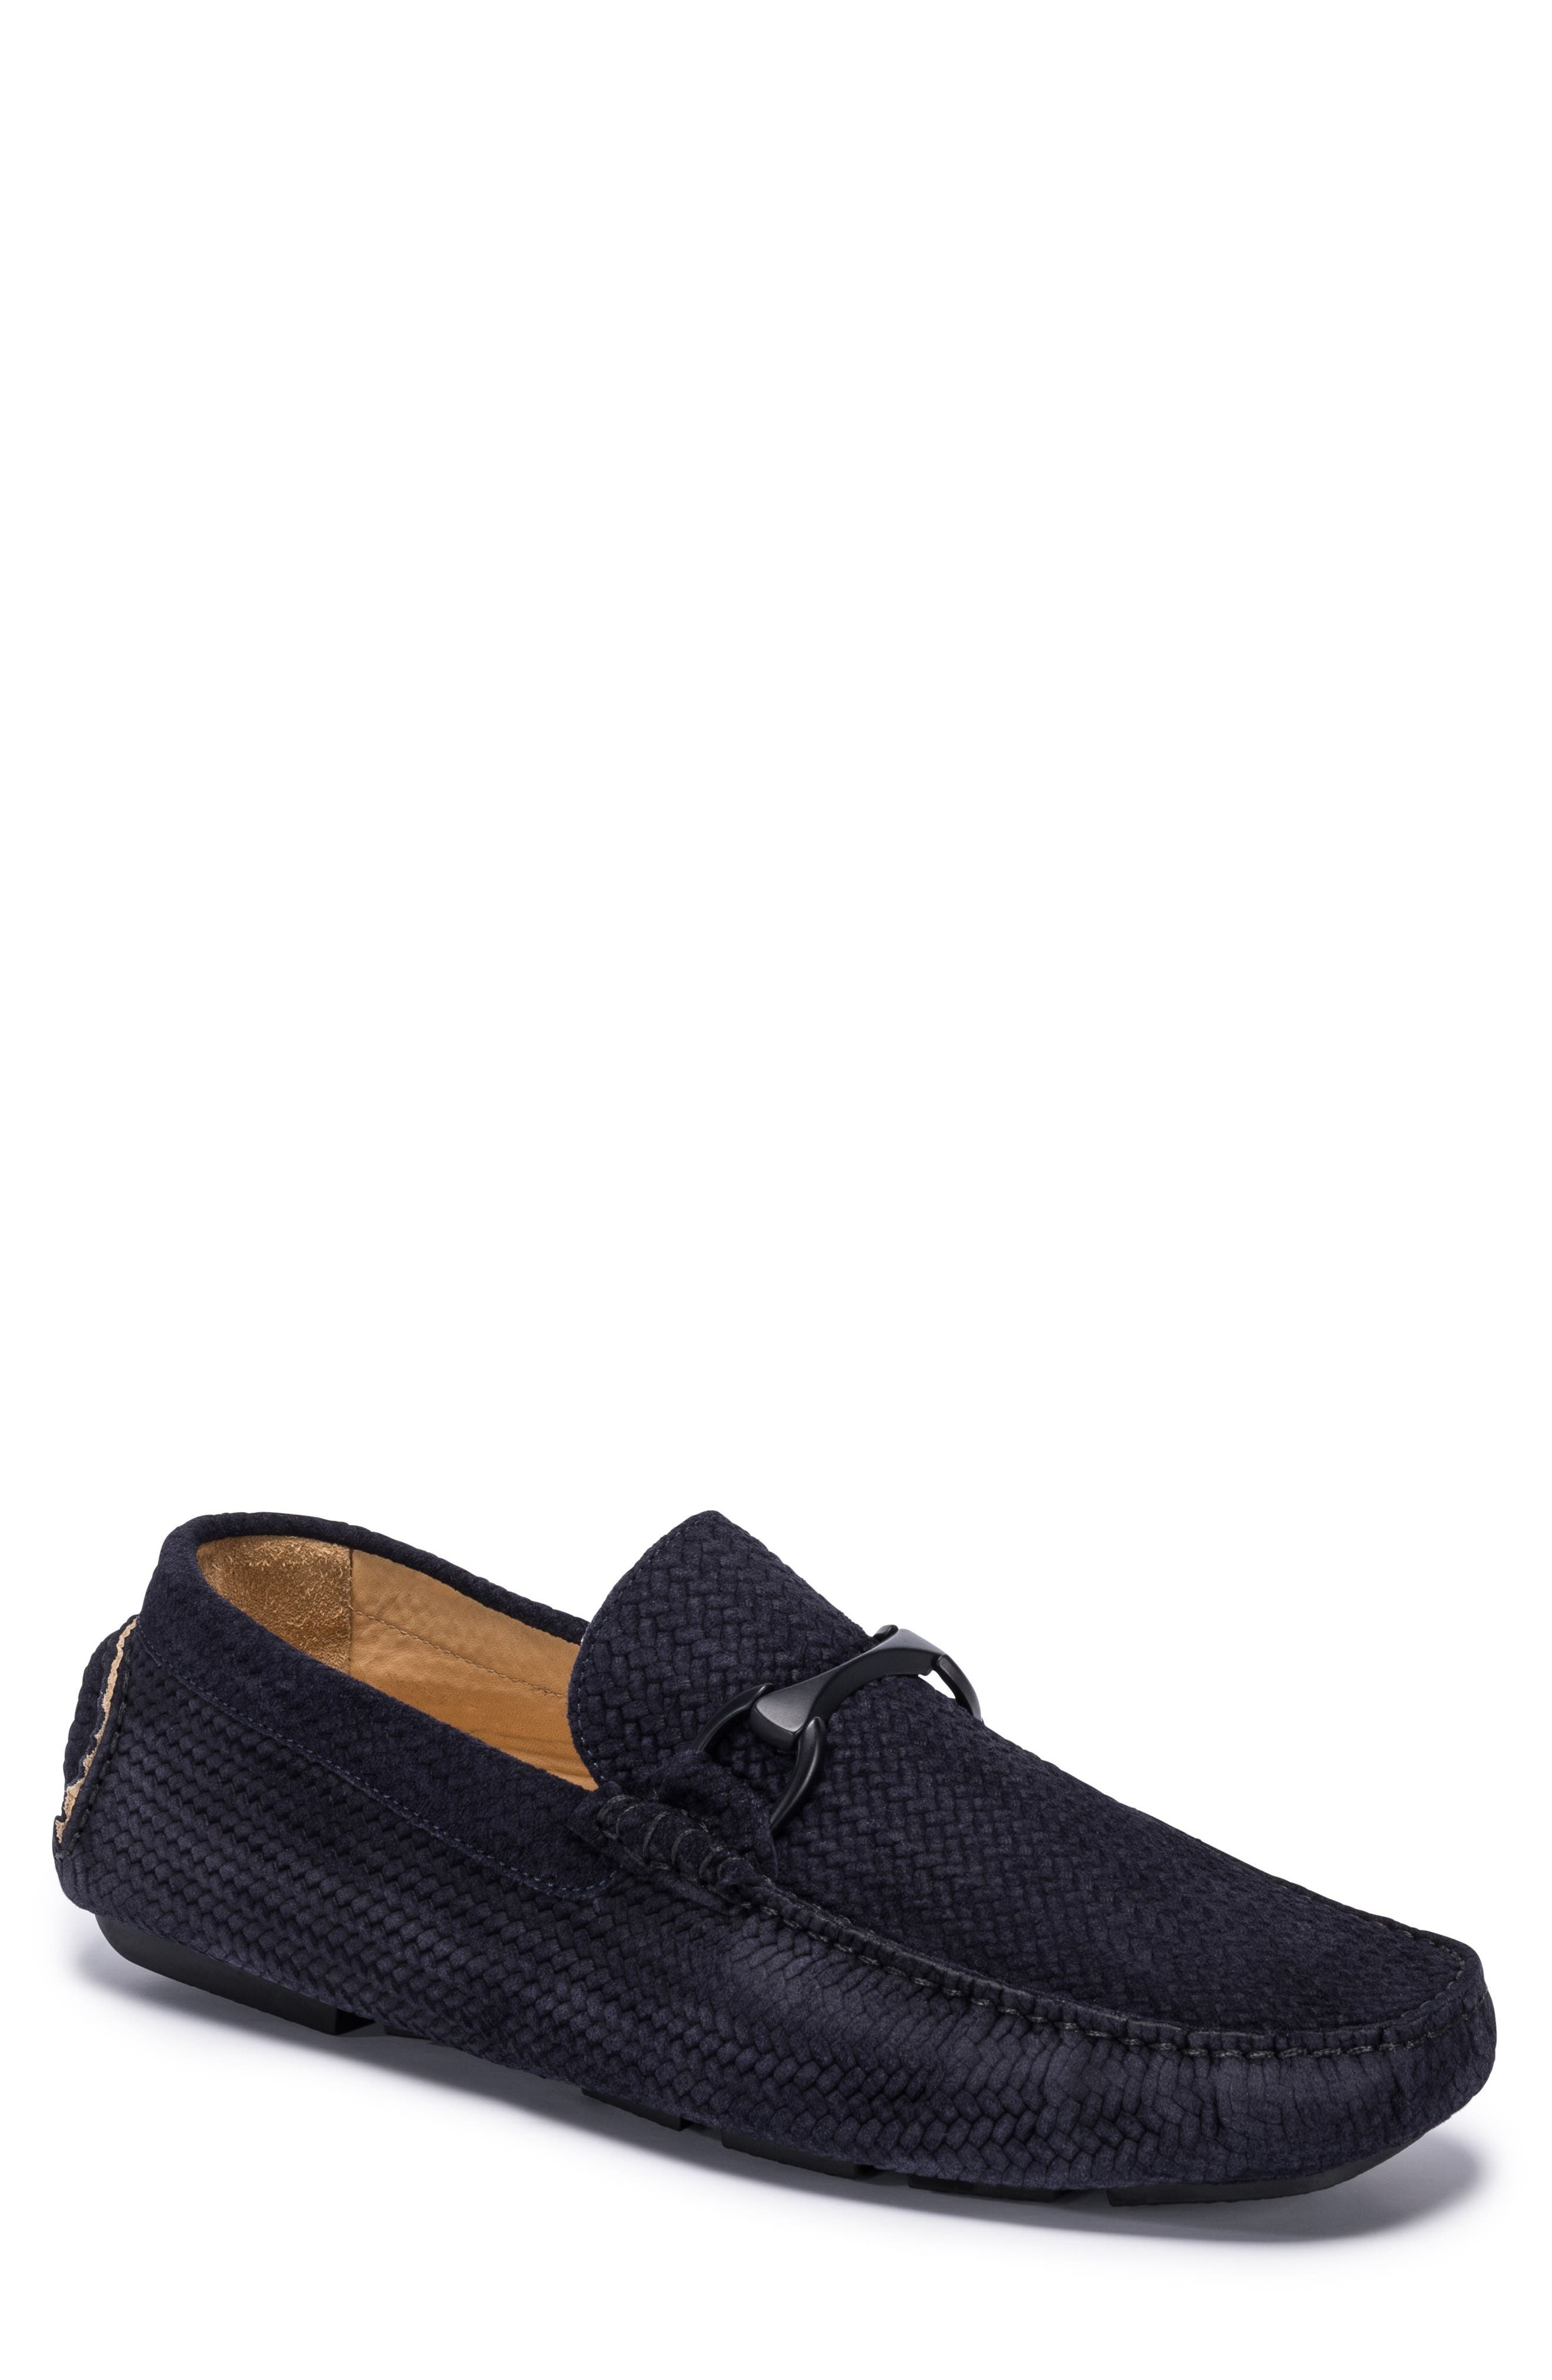 Amalfi Woven Bit Driving Loafer,                             Main thumbnail 1, color,                             Blue Suede